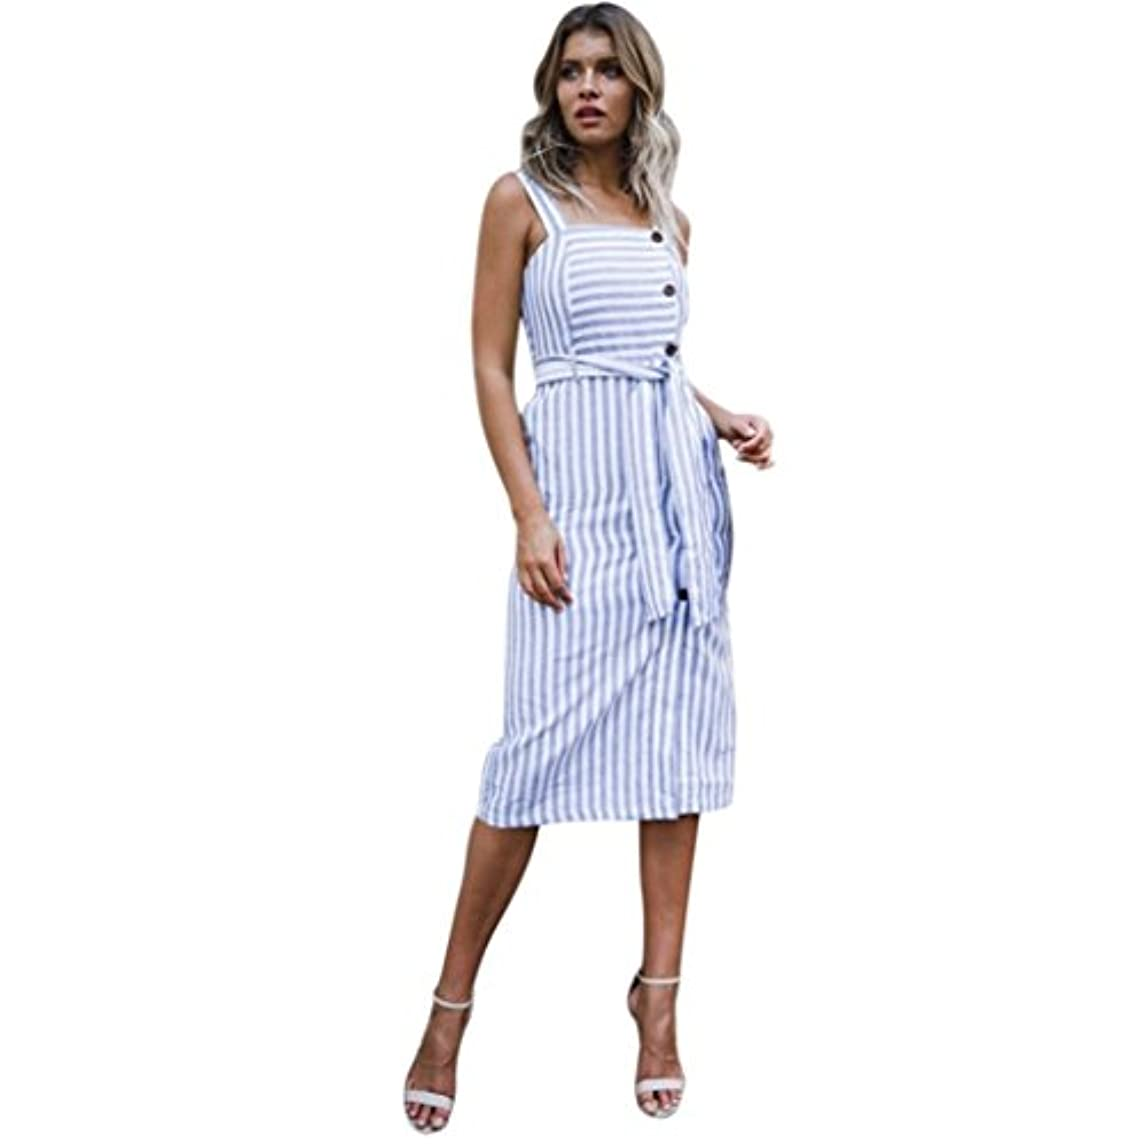 保護する柔らかい足味SakuraBest Womens Summer Striped Button Down Dress,Shoulder Strap Knee-Length Dress for Girls (L)